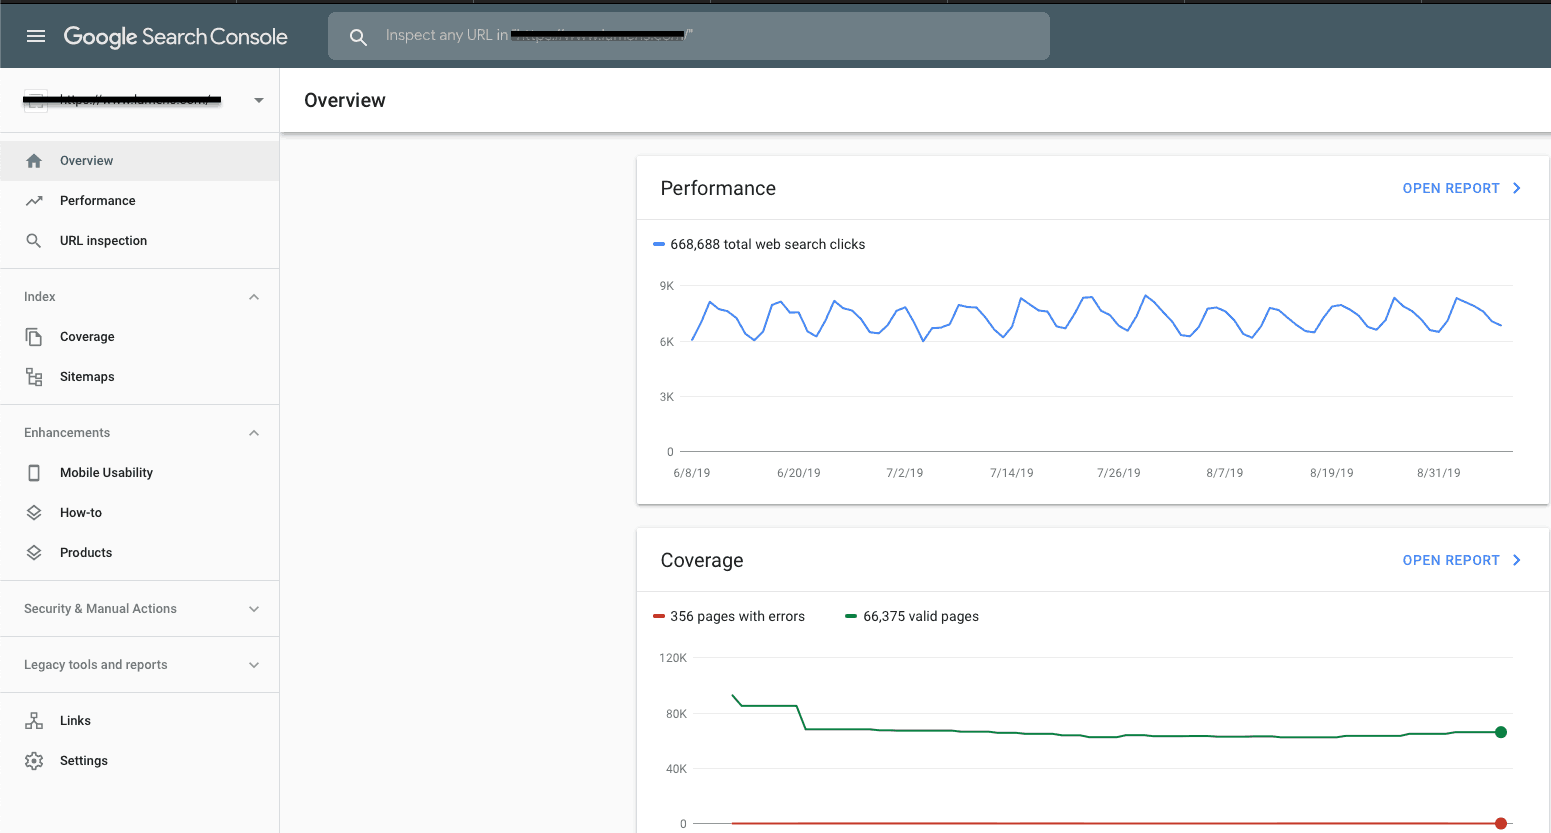 New Google Search Console UI